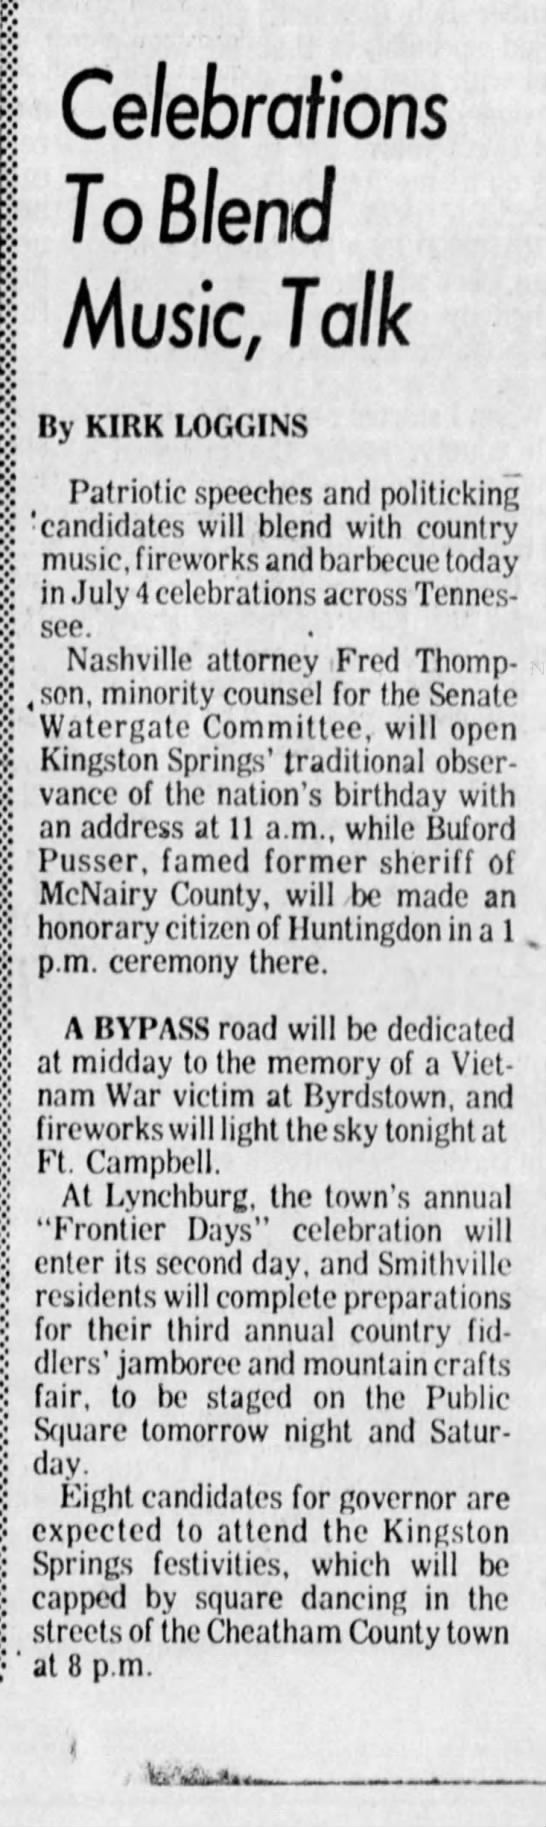 1974-07-04 TENNESSEAN Celebrations To Blend Music, Talk_25 - p:: jij K ft Celebrations To Blend Music, Talk...